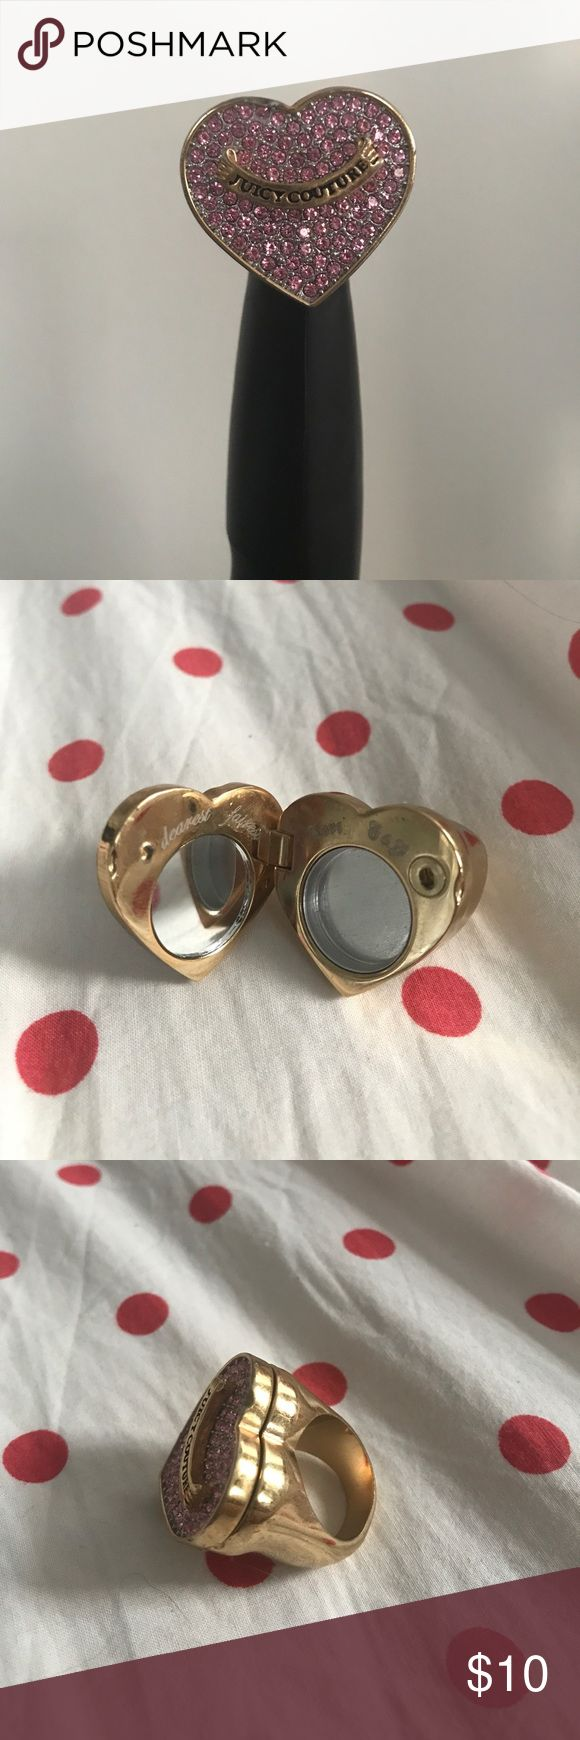 Juicy Couture Ring Used. All lipgloss is taken out. Has small ding at the top of heart. I tried to capture it in the picture. Does not latch closed, meaning the top comes open randomly. Still cute. Still has all the jewels in it. I wear size 7 in rings so it's about that size. Juicy Couture Jewelry Rings